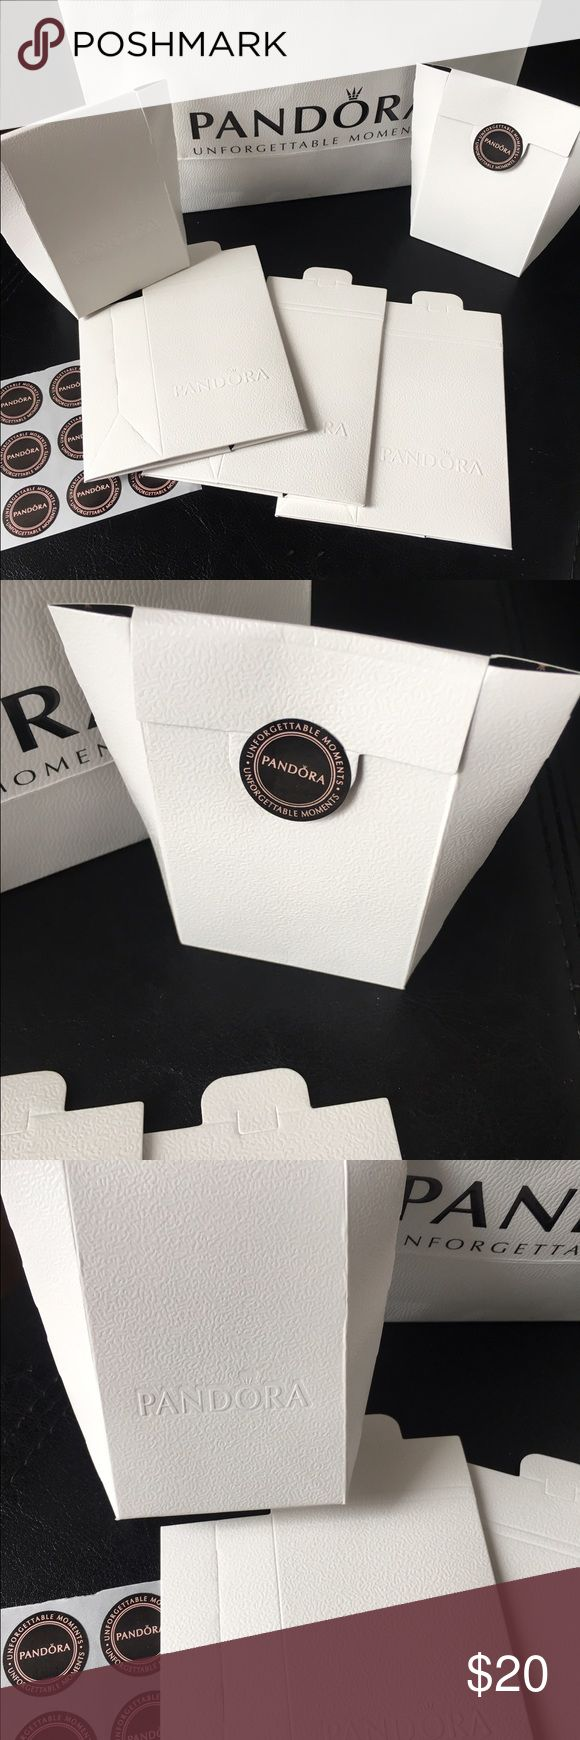 Lot of 6 Pandora paper gift boxes Lot Of  6 Pandor@ Mini White Paper Bags 9*6*3 Cm . Perfect For Charms, high quality pandora  Other